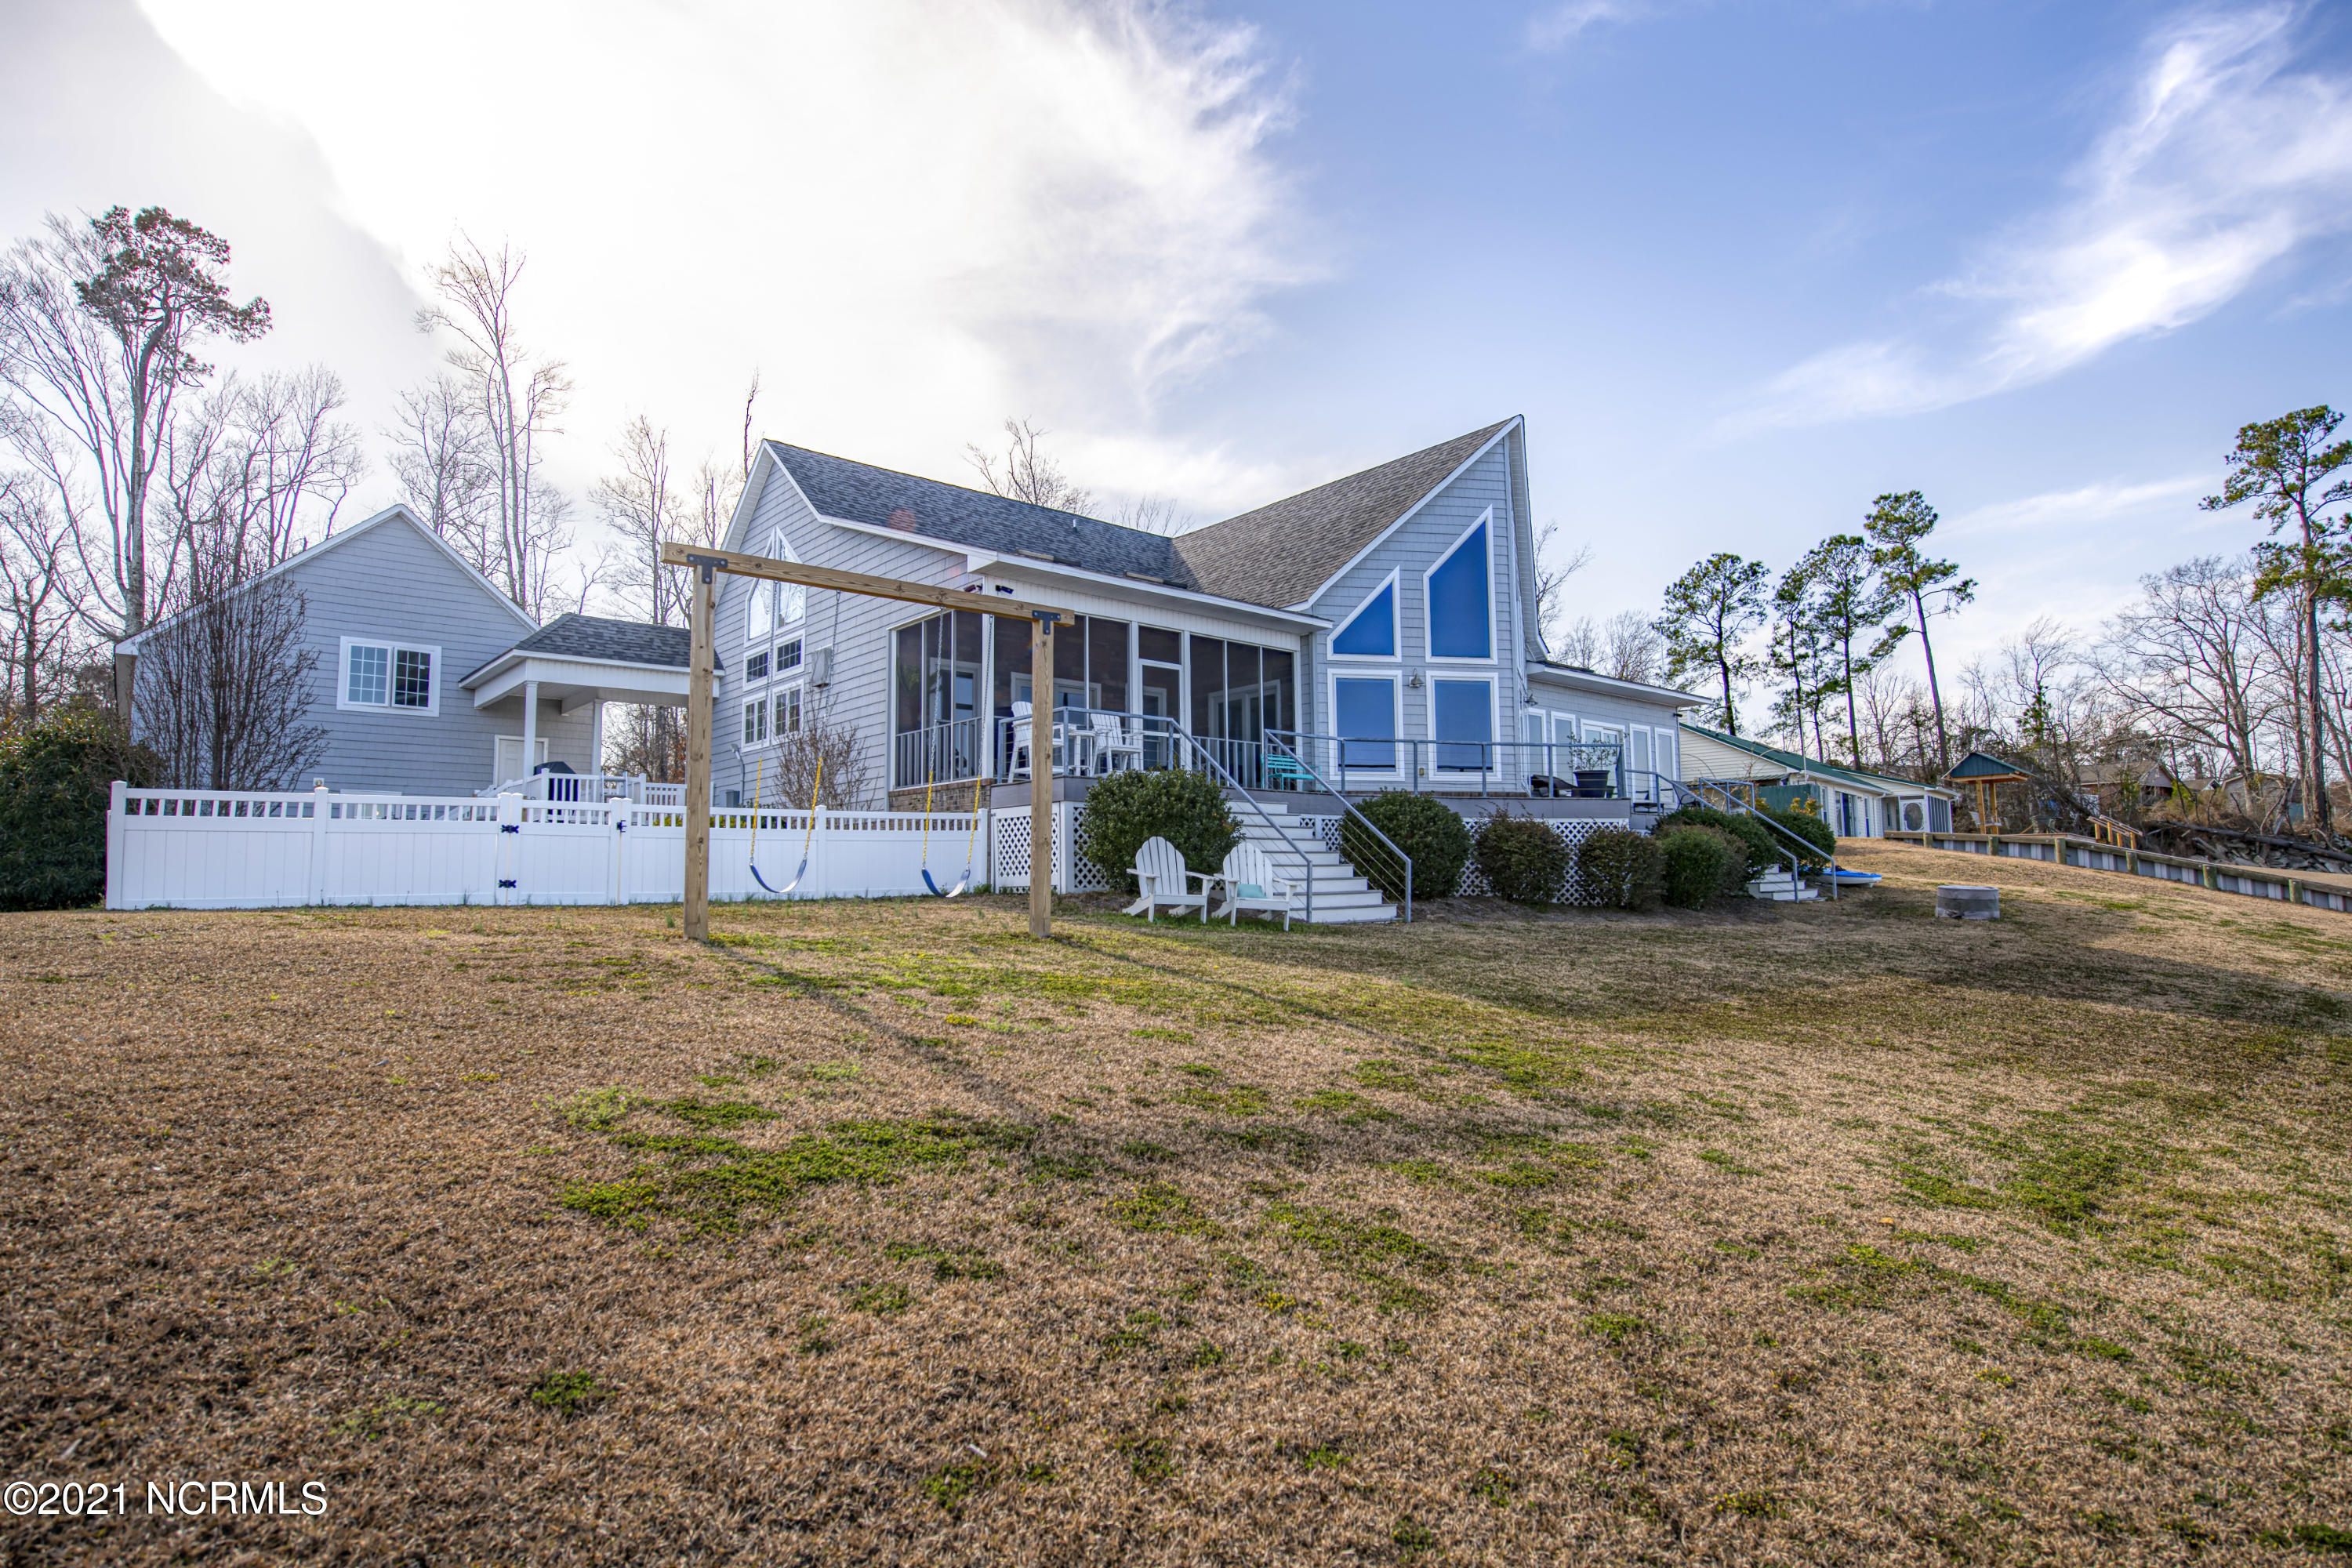 925 Stately Pines Road, New Bern, North Carolina 28560, 3 Bedrooms Bedrooms, 9 Rooms Rooms,3 BathroomsBathrooms,Single family residence,For sale,Stately Pines,100258685